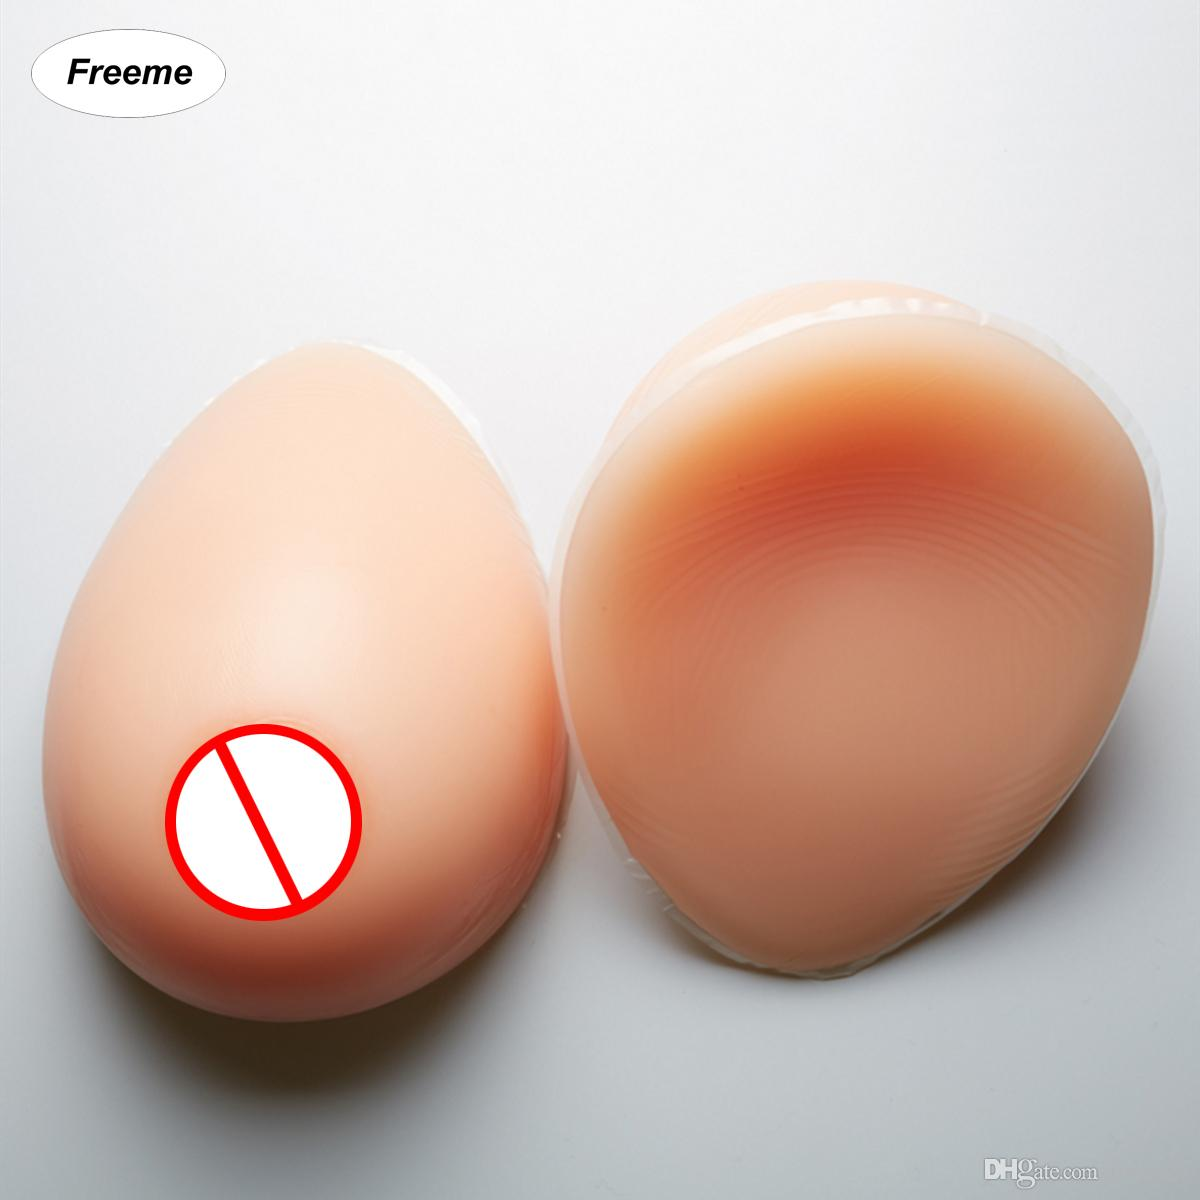 Freeme False Breast 800G C Cup Artificial Silicone Breasts Forms Fake Boobs  For Shemale Crossdresser L Size Breasts Realistic Attachable Breast Forms  ... d4c0e4472